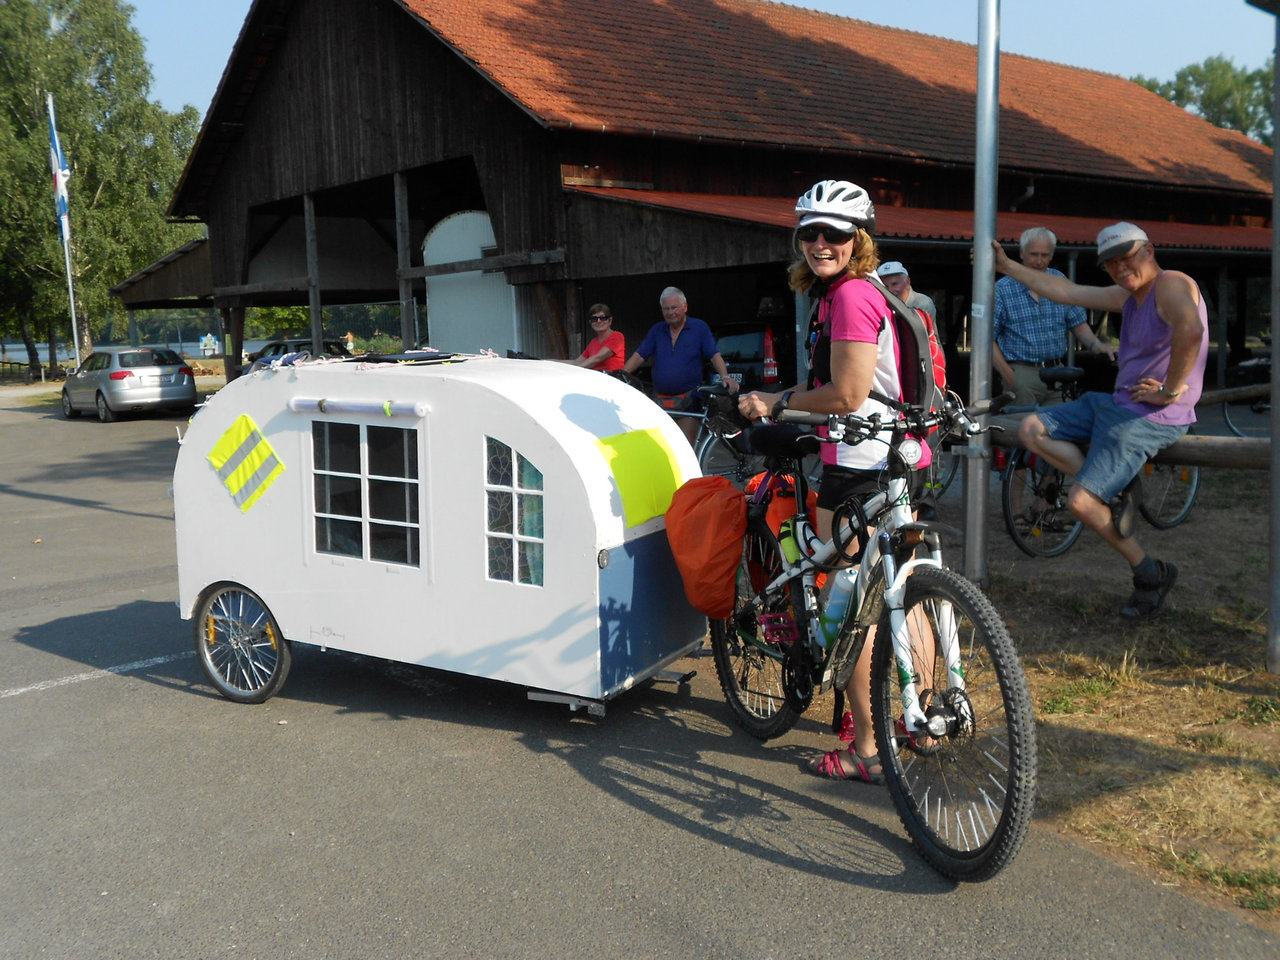 campinganh nger von dethleffs cargobike forum. Black Bedroom Furniture Sets. Home Design Ideas